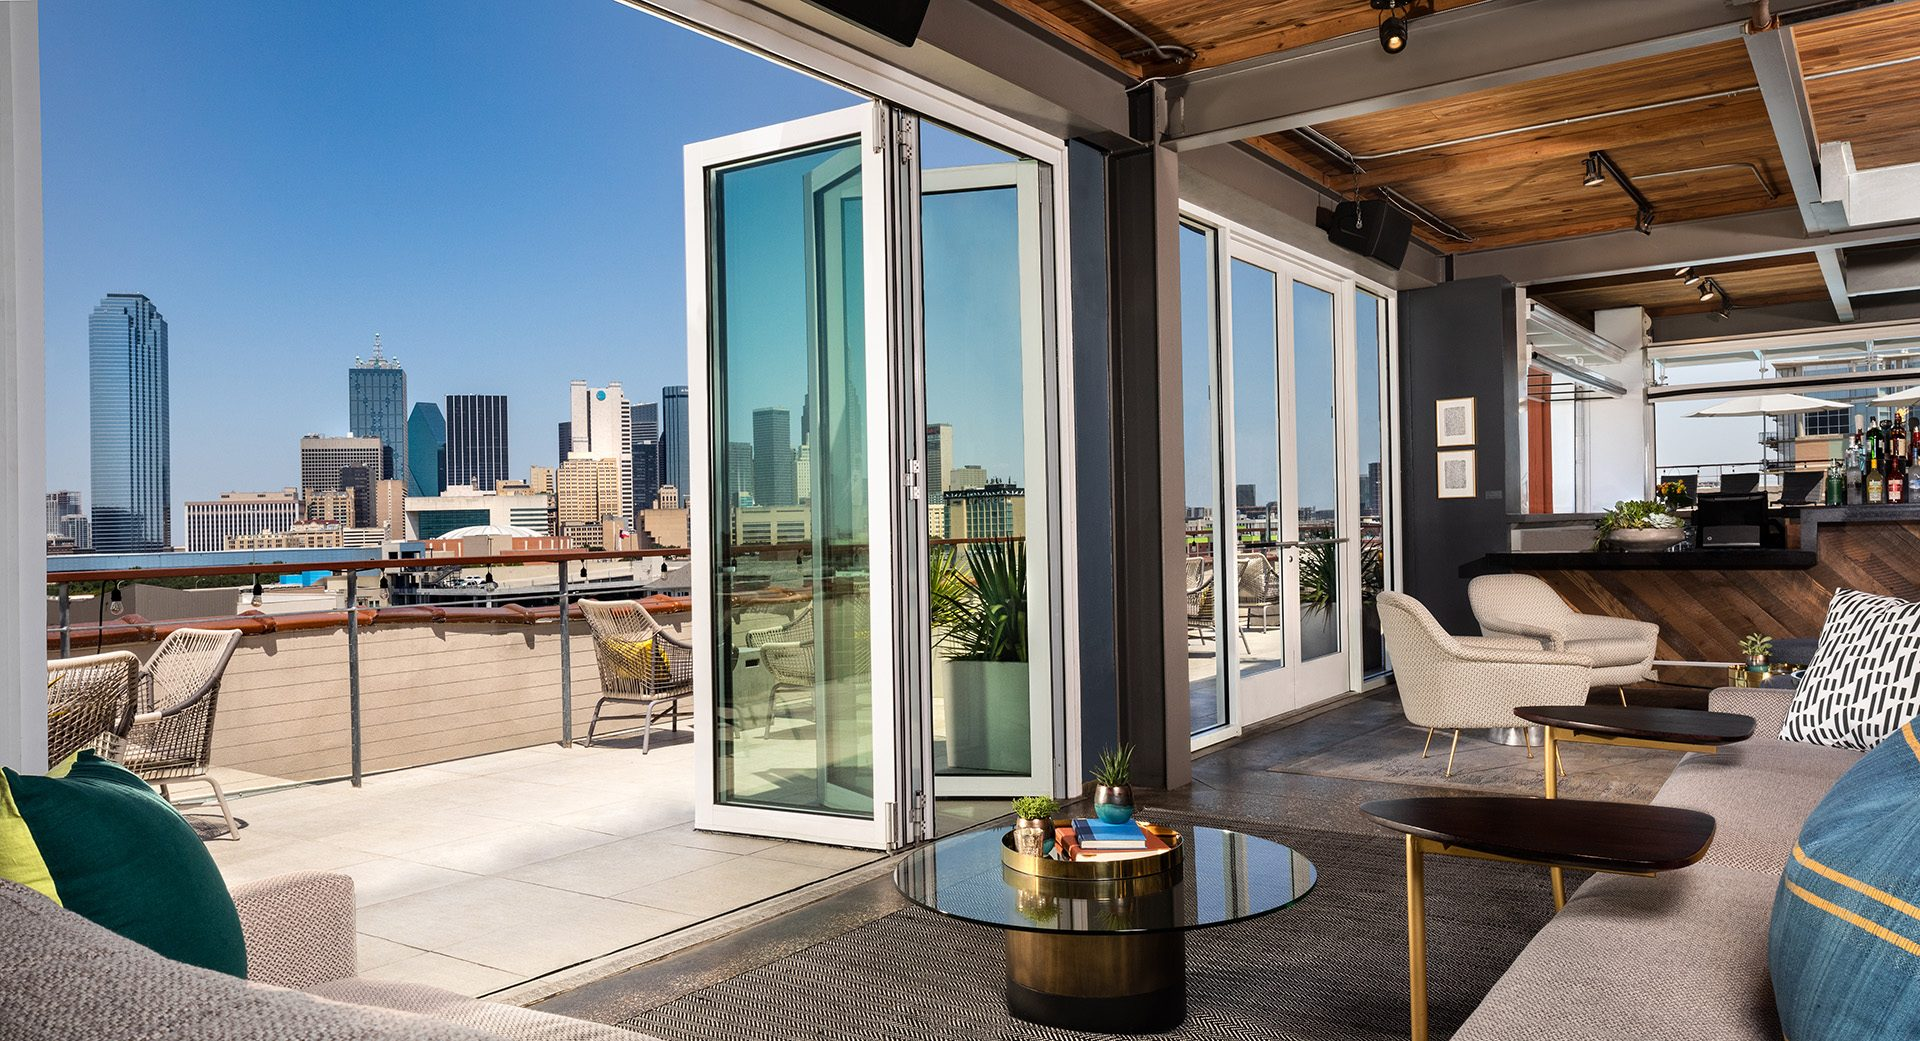 Gallery rooftop with lounge seating and outside view of Dallas Skyline